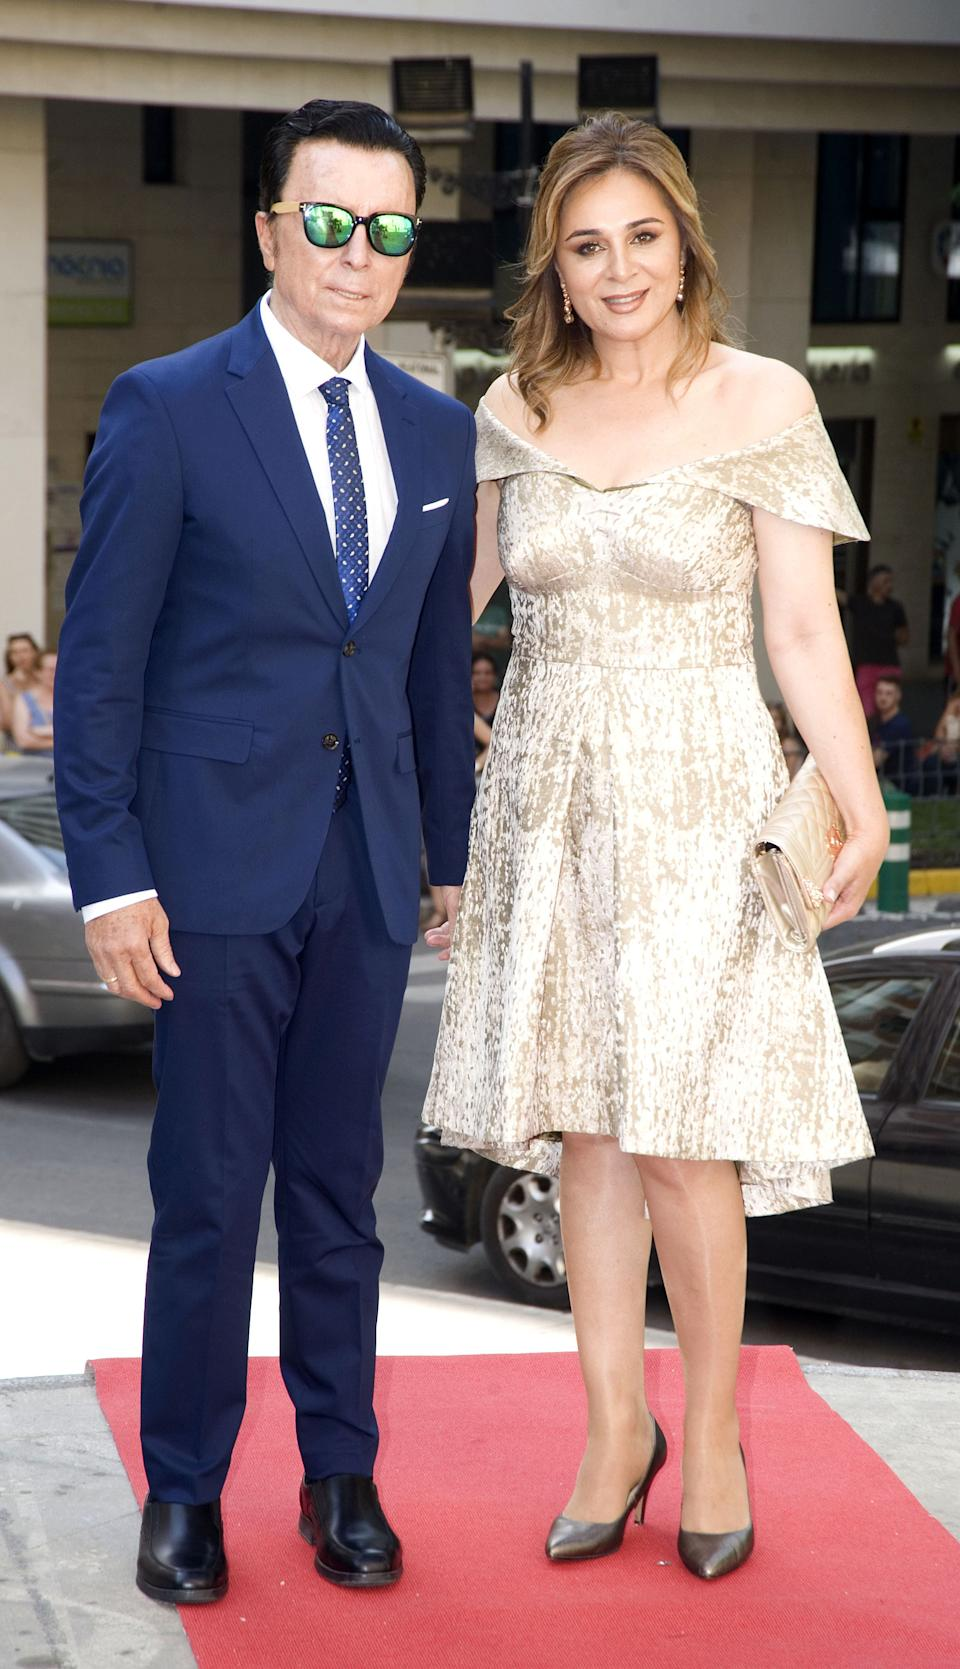 ALBACETE, SPAIN - JULY 05: Jose Ortega Cano and Ana Maria Aldon attend the wedding of Dámaso González Jr. And Miriam Lanza at Albacete Cathedral on July 05, 2019 in Albacete, Spain. (Photo by Europa Press Entertainment/Europa Press via Getty Images)